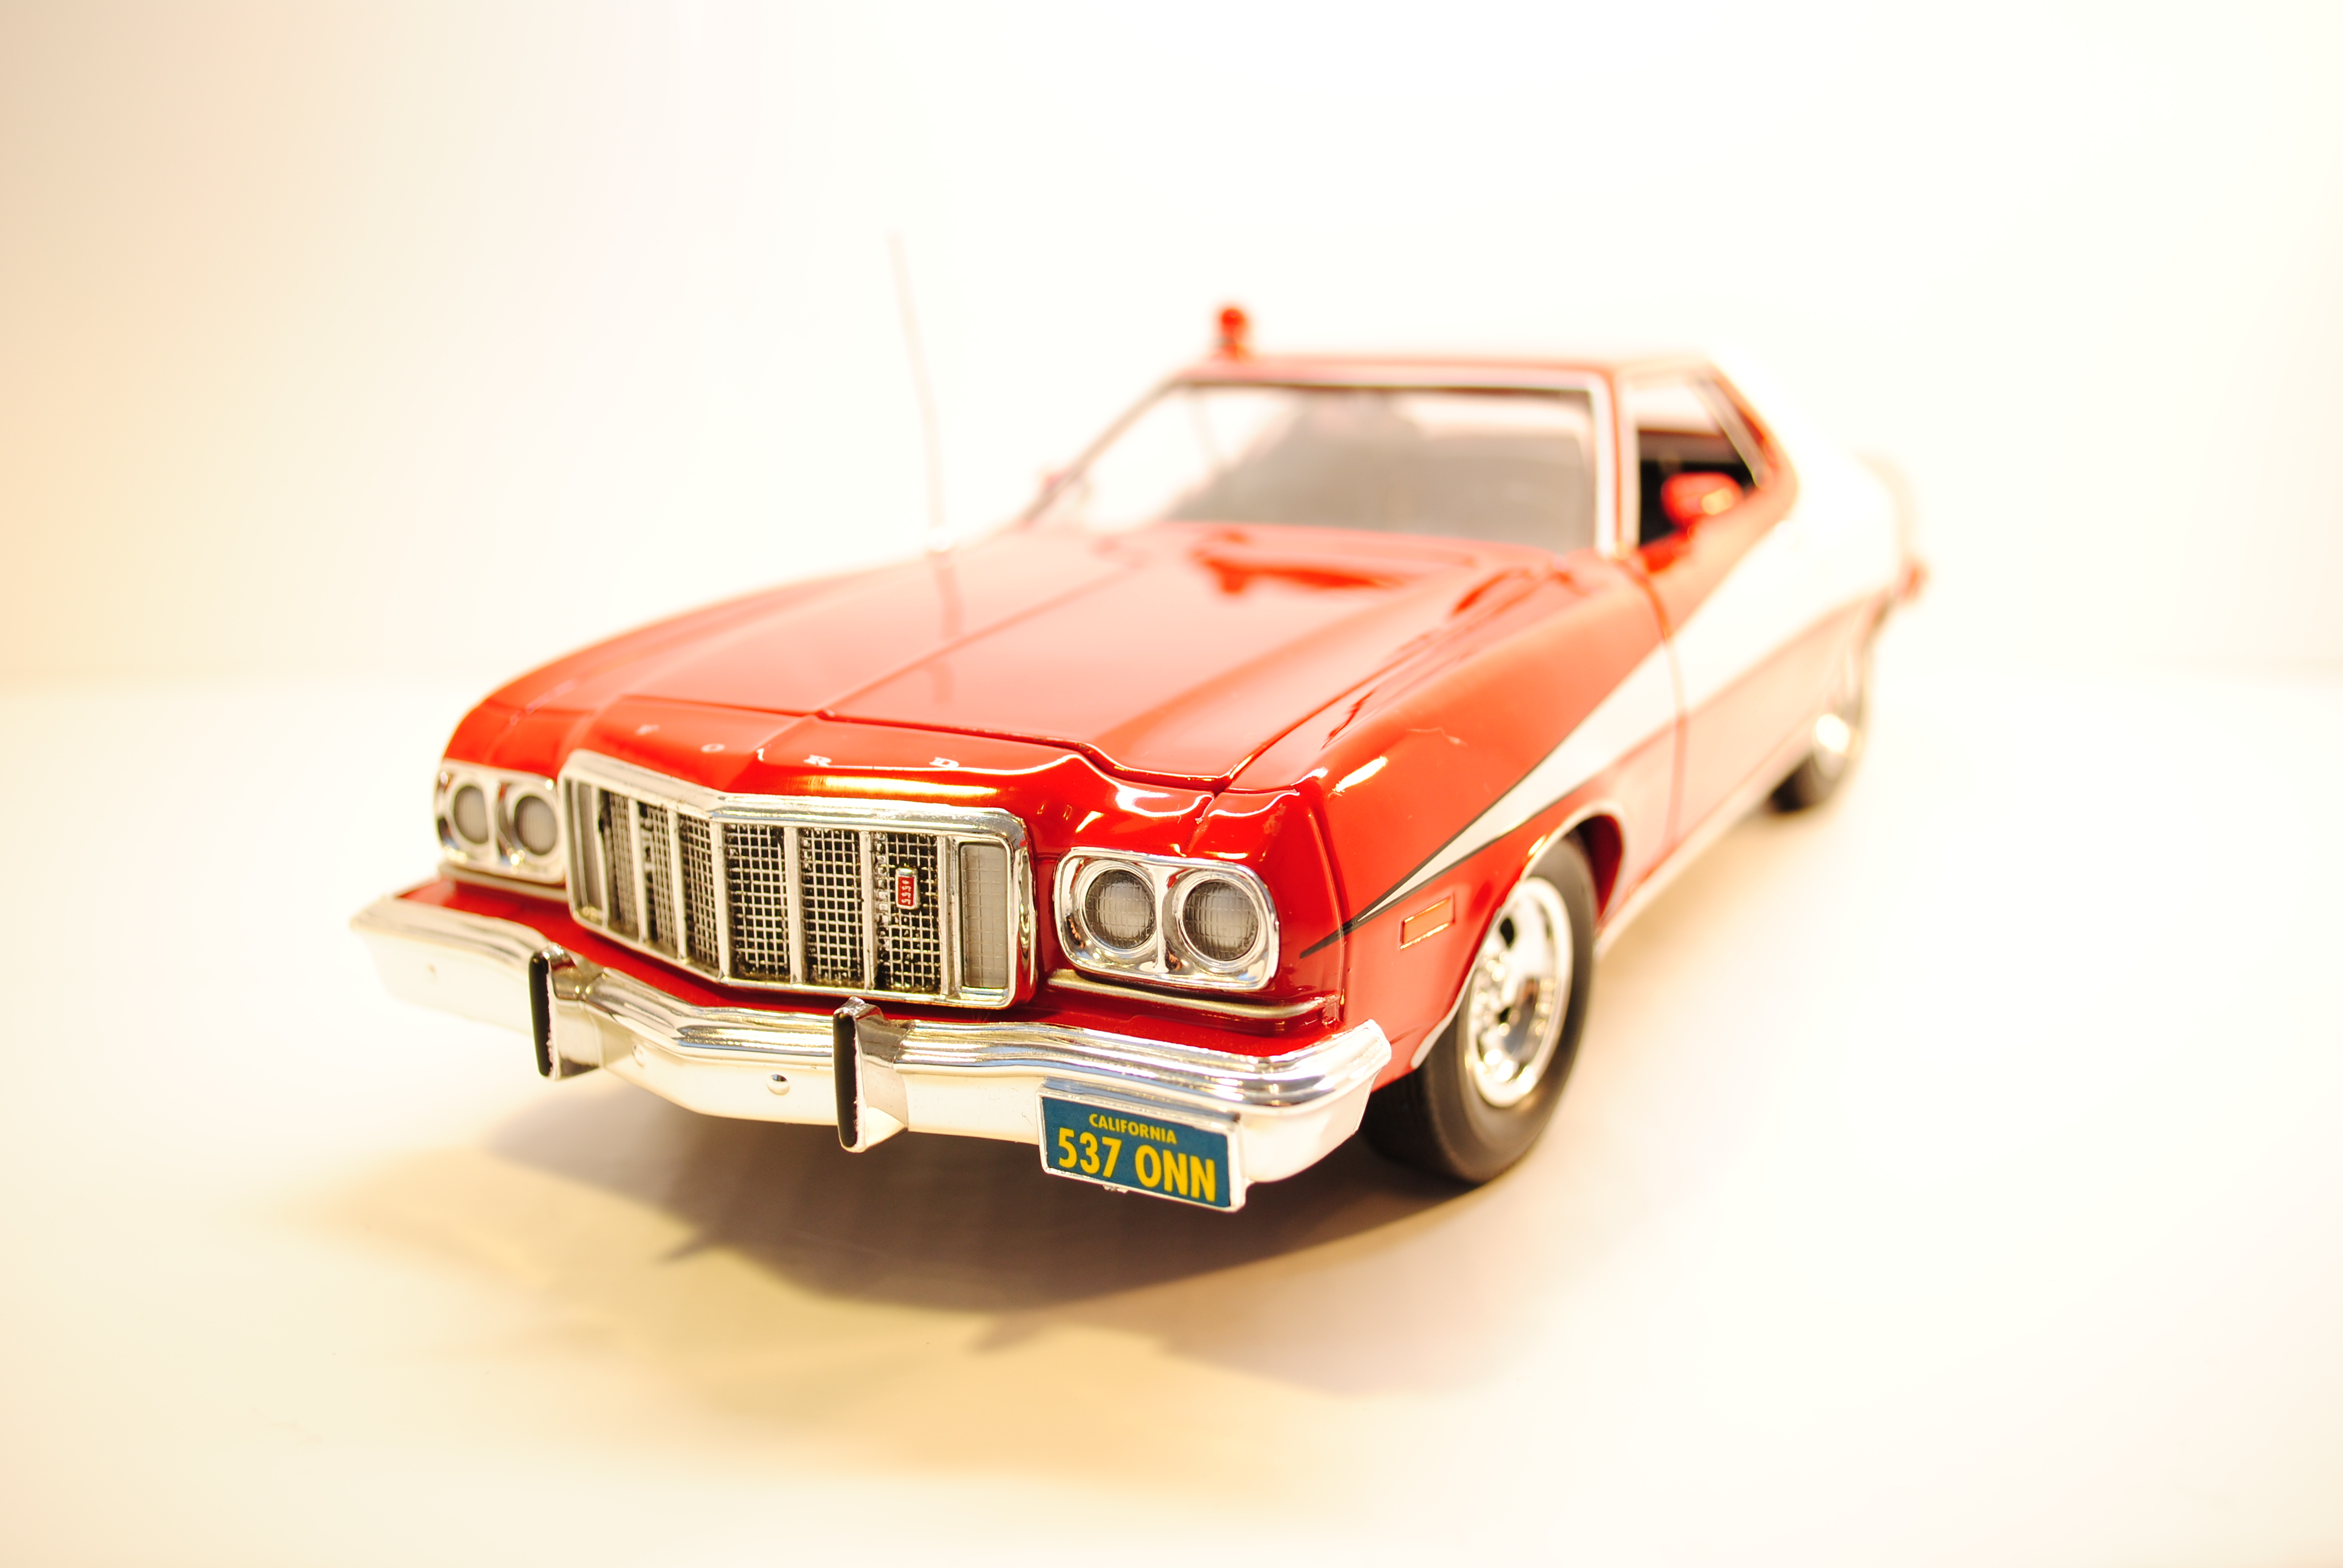 1976 ford gran torino starsky hutch 1 18 ertl model car motorscotti. Black Bedroom Furniture Sets. Home Design Ideas